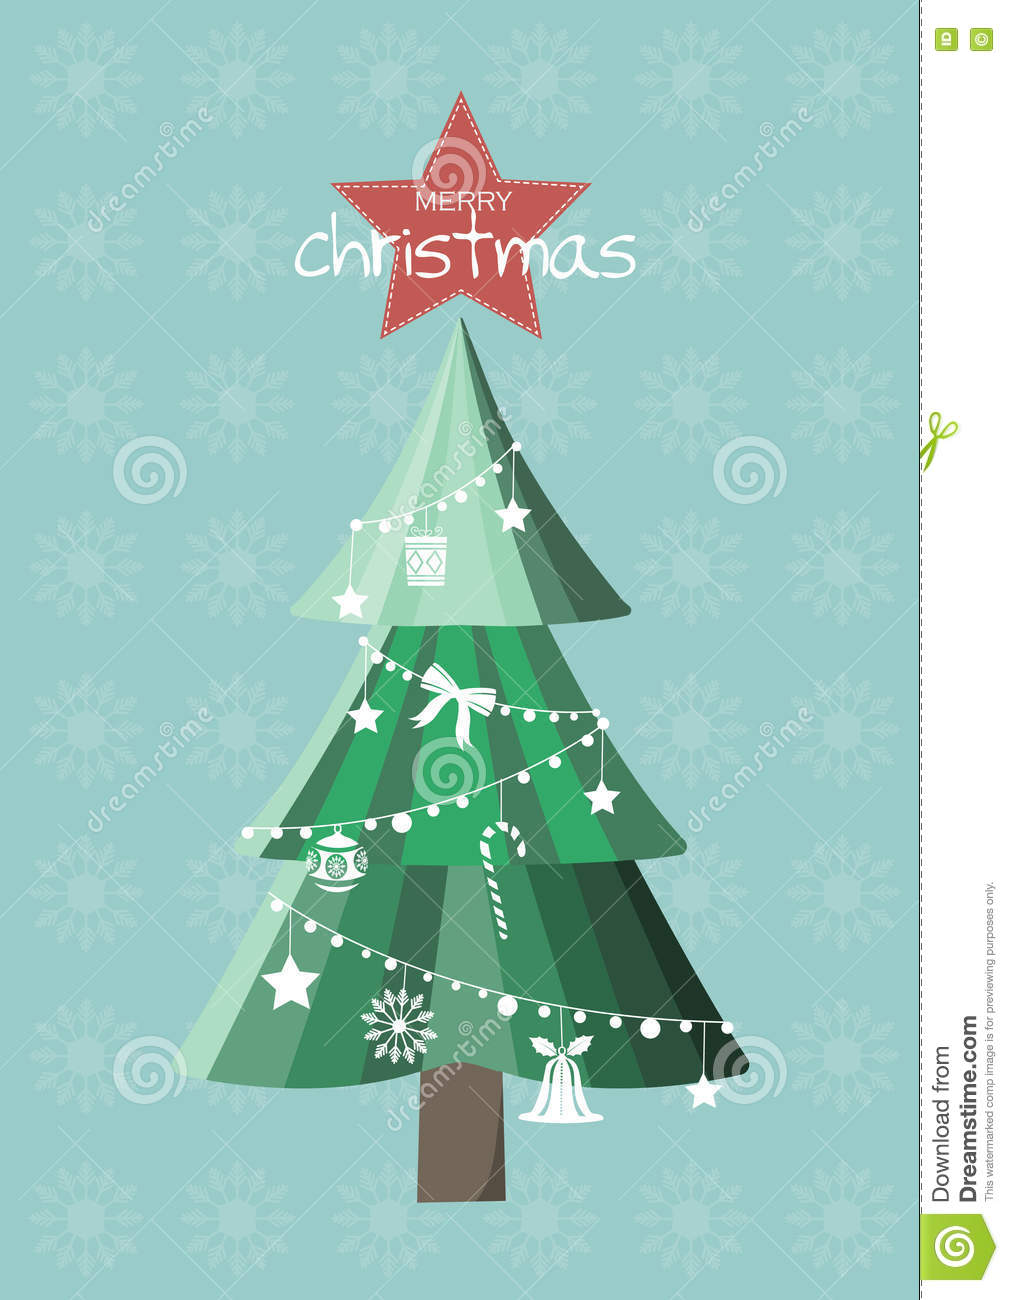 Christmas Tree With Ornament,Christmas Cards Stock Illustration ...